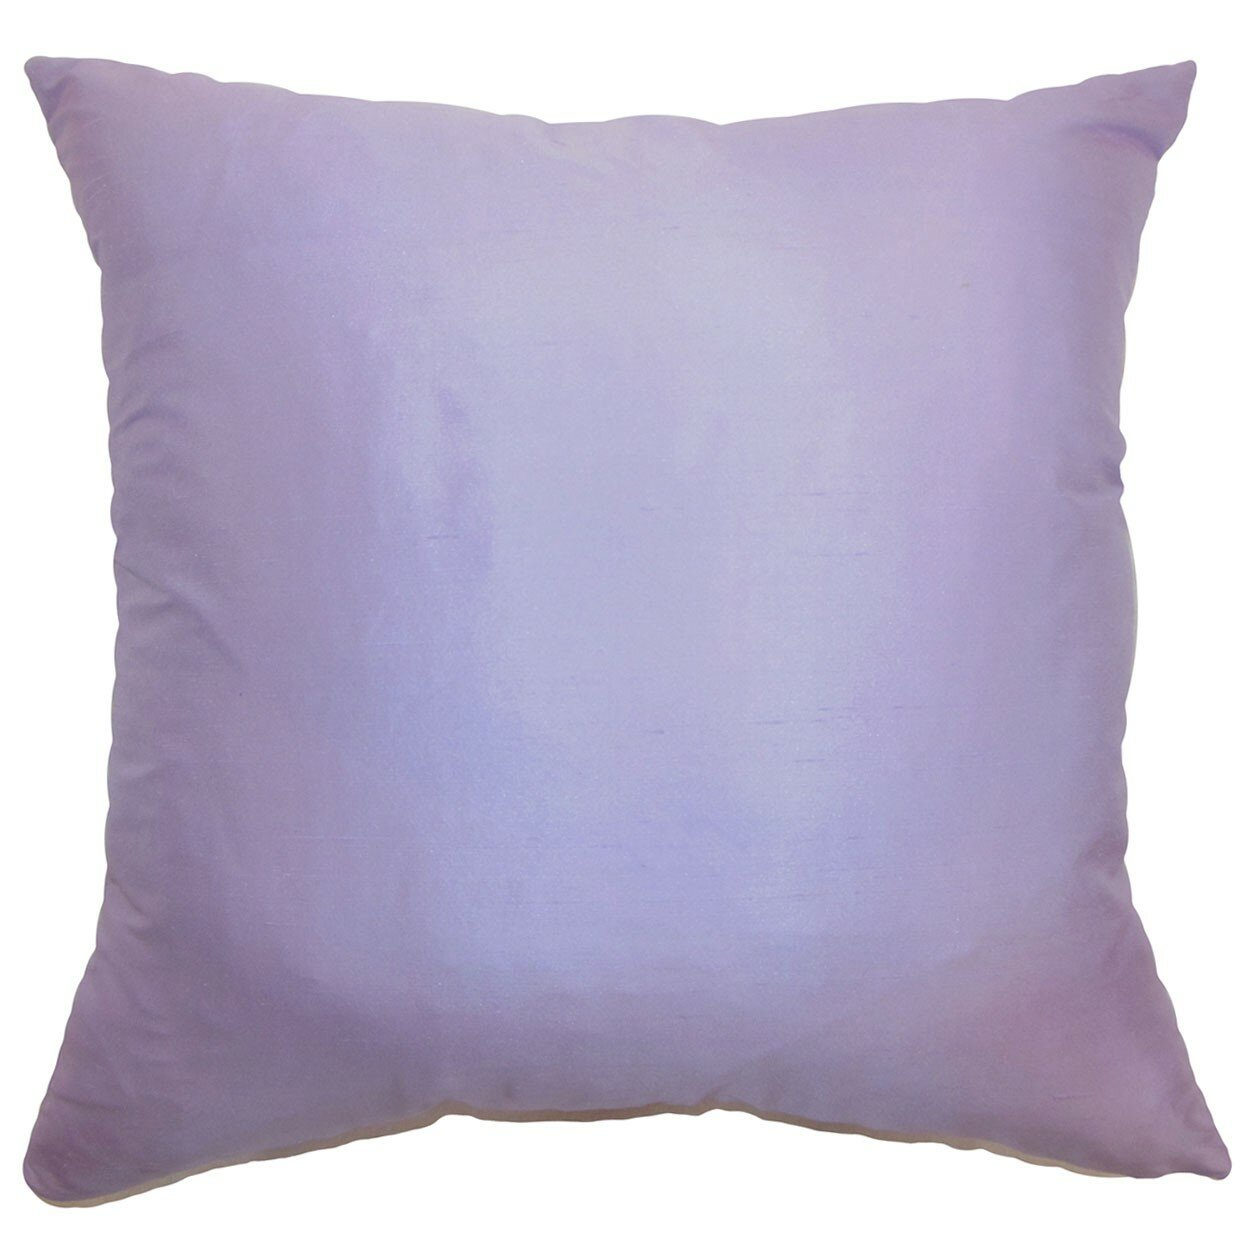 Throw Pillows Pictures : The Pillow Collection Desdemona Plain Silk Throw Pillow & Reviews Wayfair